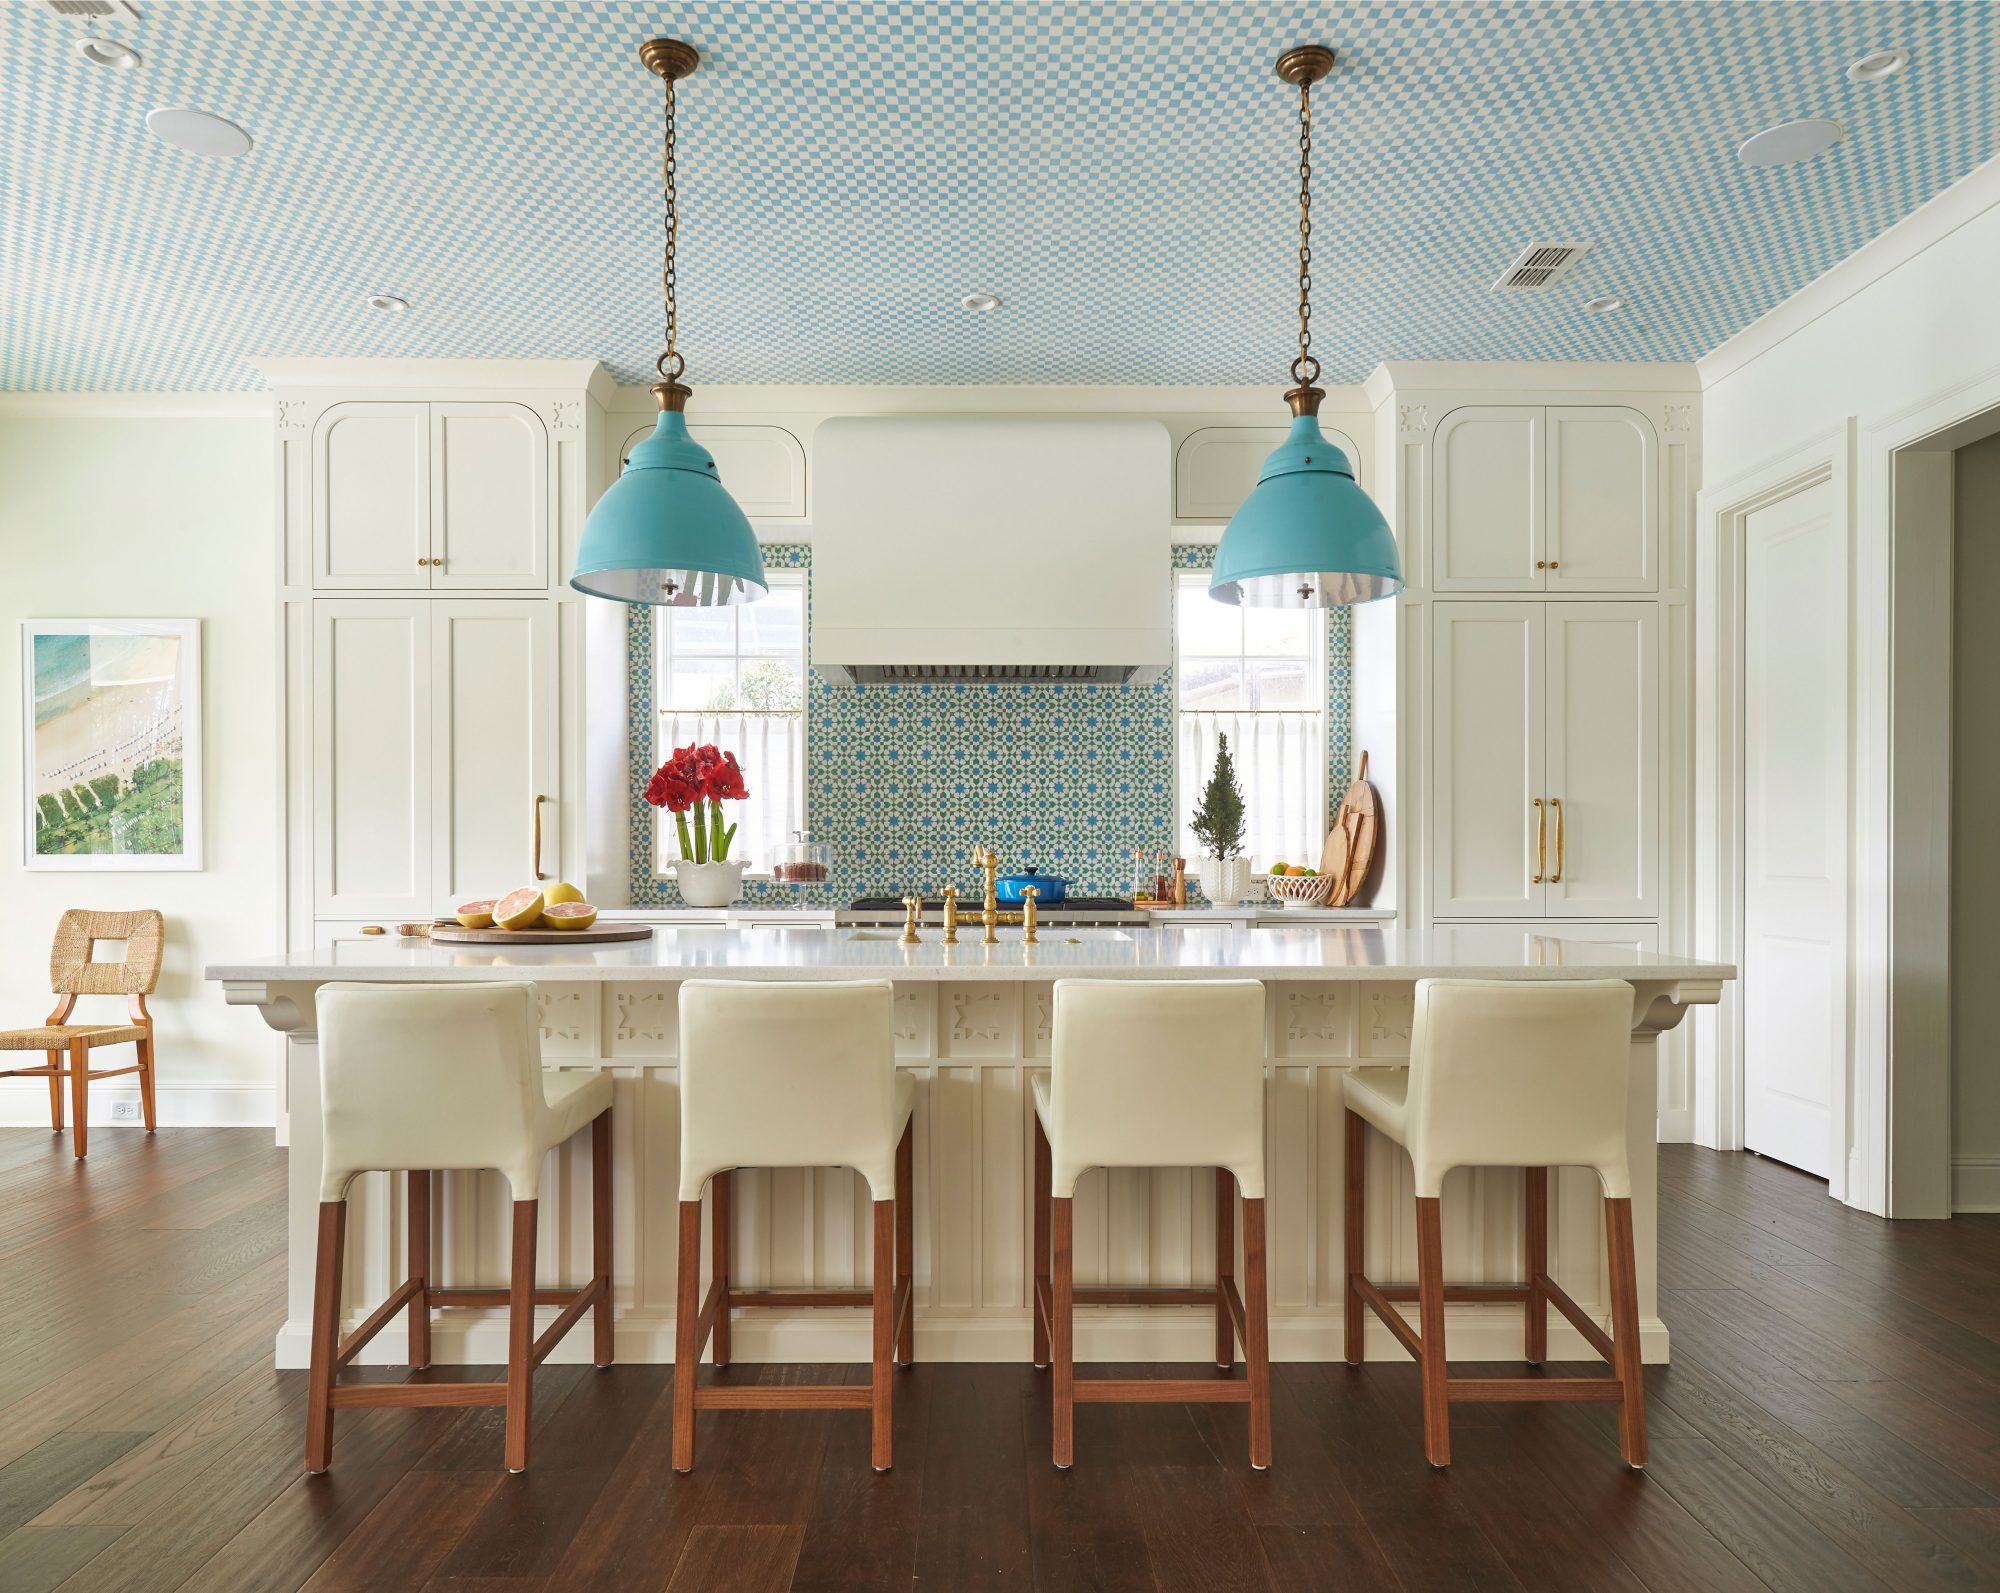 Andrew Howard Home Decorated for Christmas Blue and White Kitchen